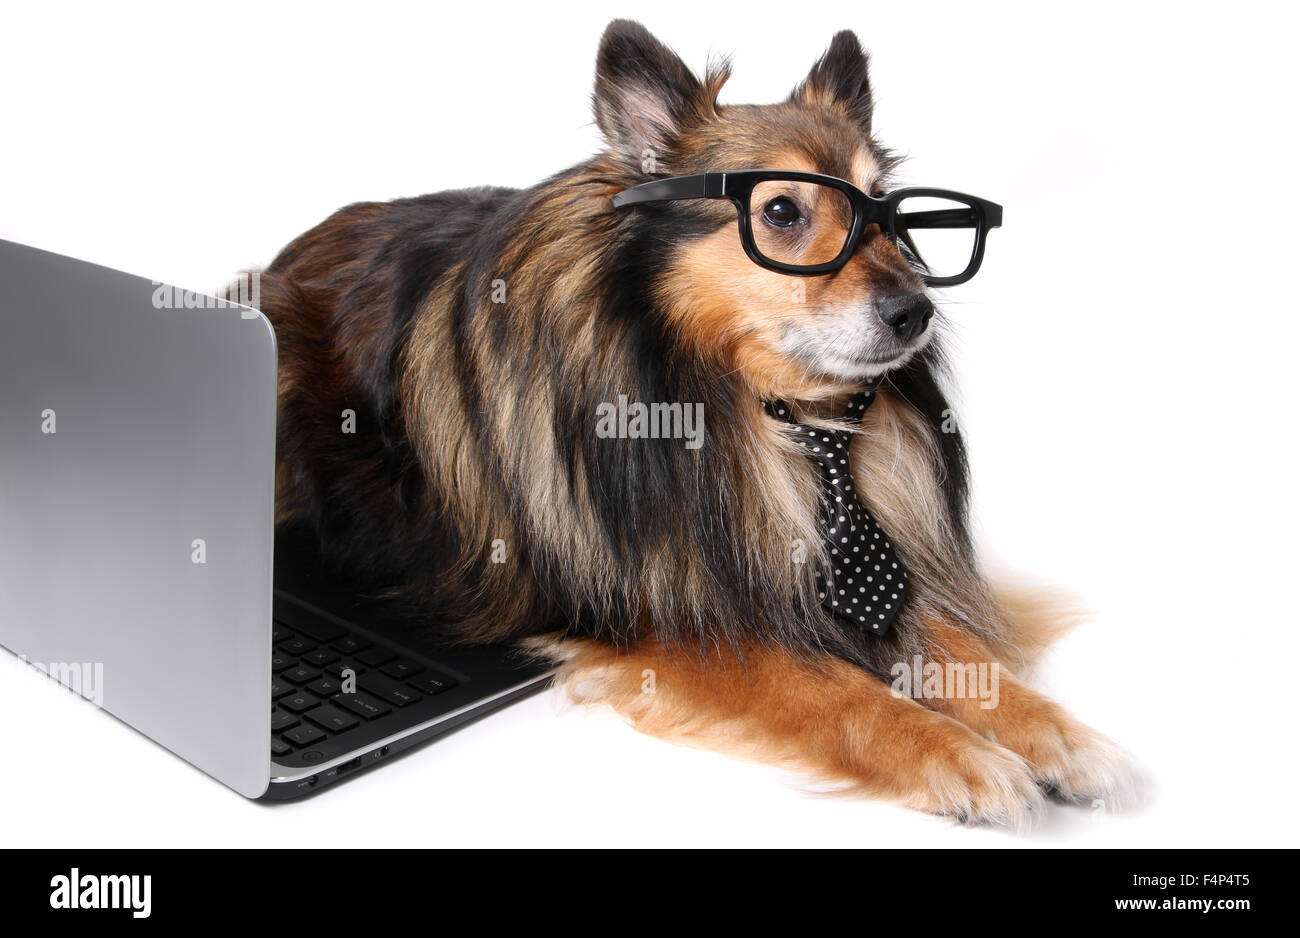 Sheltie or Shetland Sheepdog wearing a tie and geeky glasses laying by a computer laptop, working at the office - Stock Image